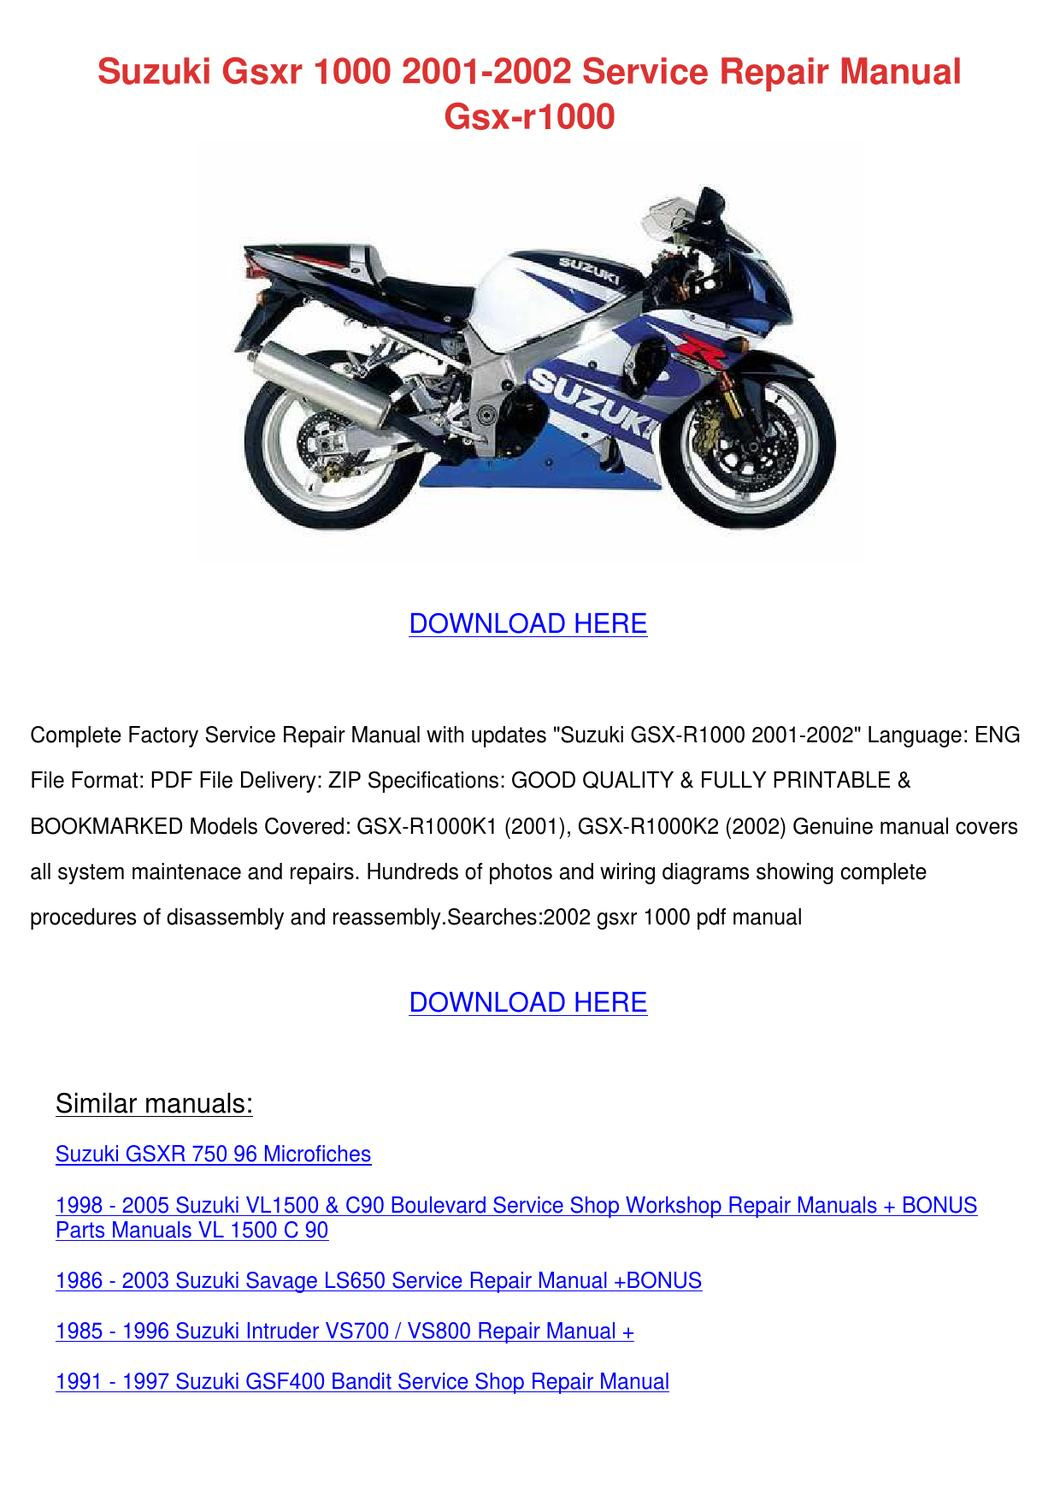 suzuki gsxr 1000 2001 2002 service repair man by barbera cutten issuu